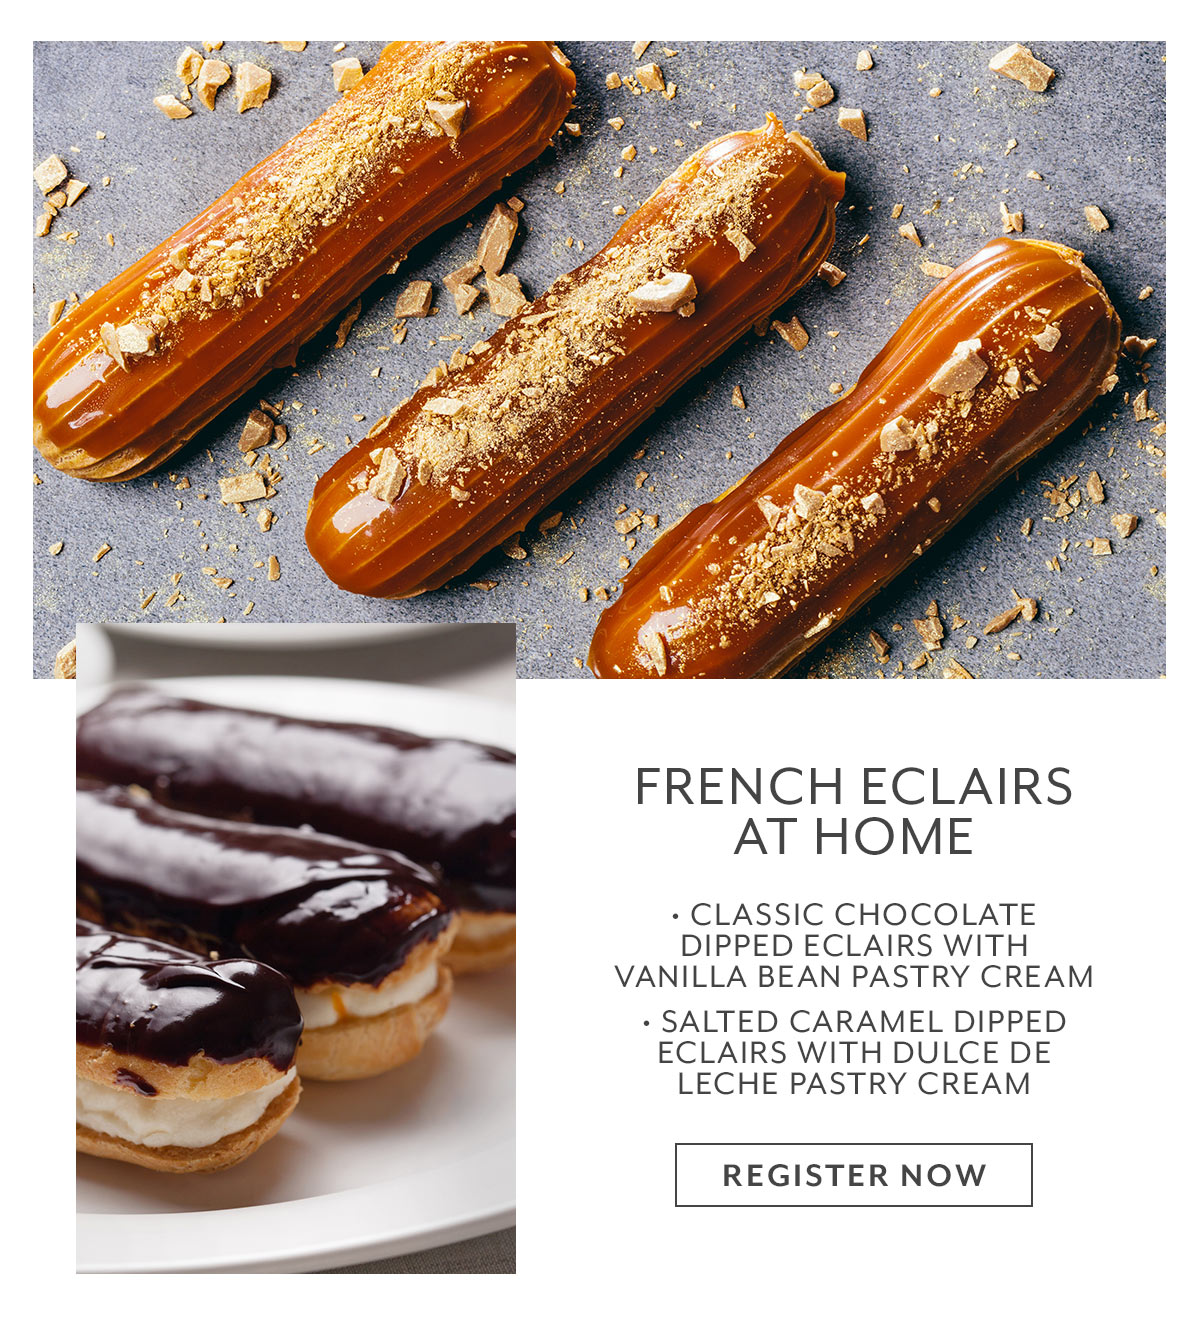 Class: French Eclairs at Home